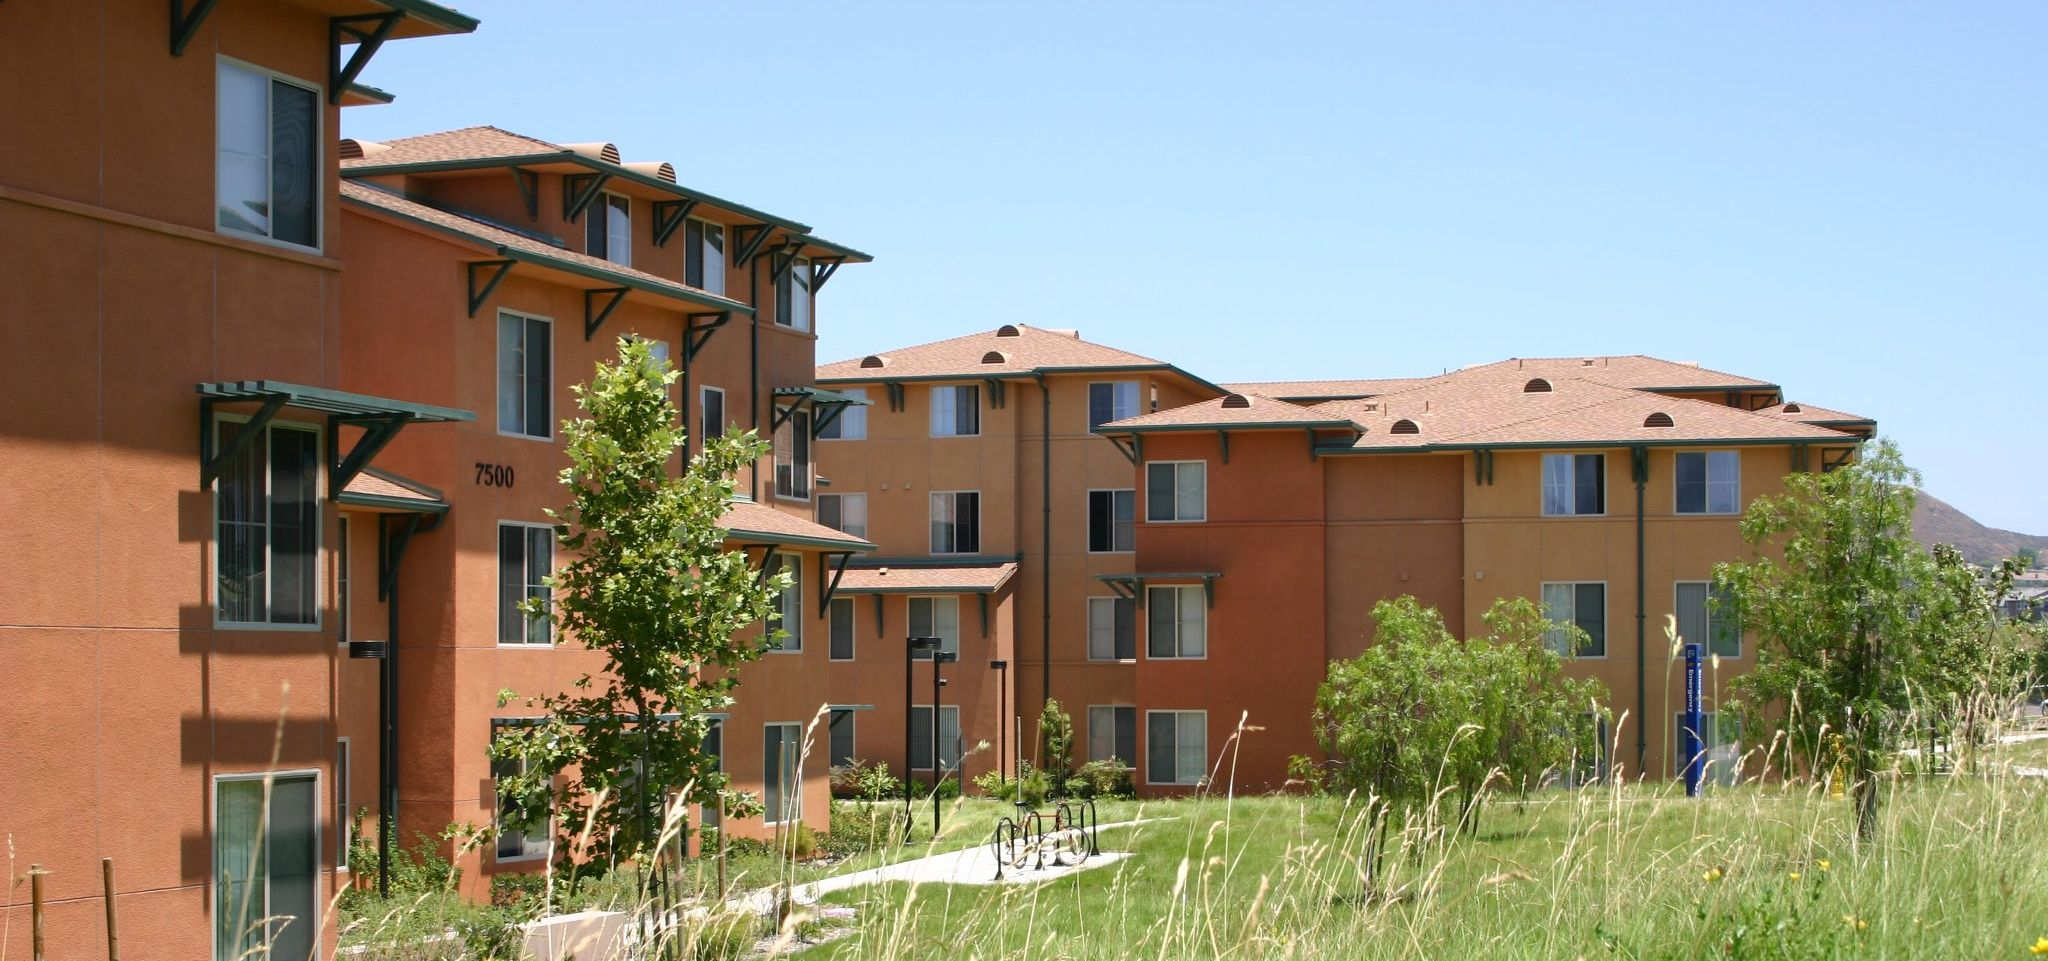 Irvine East Campus Apartments (FTS)